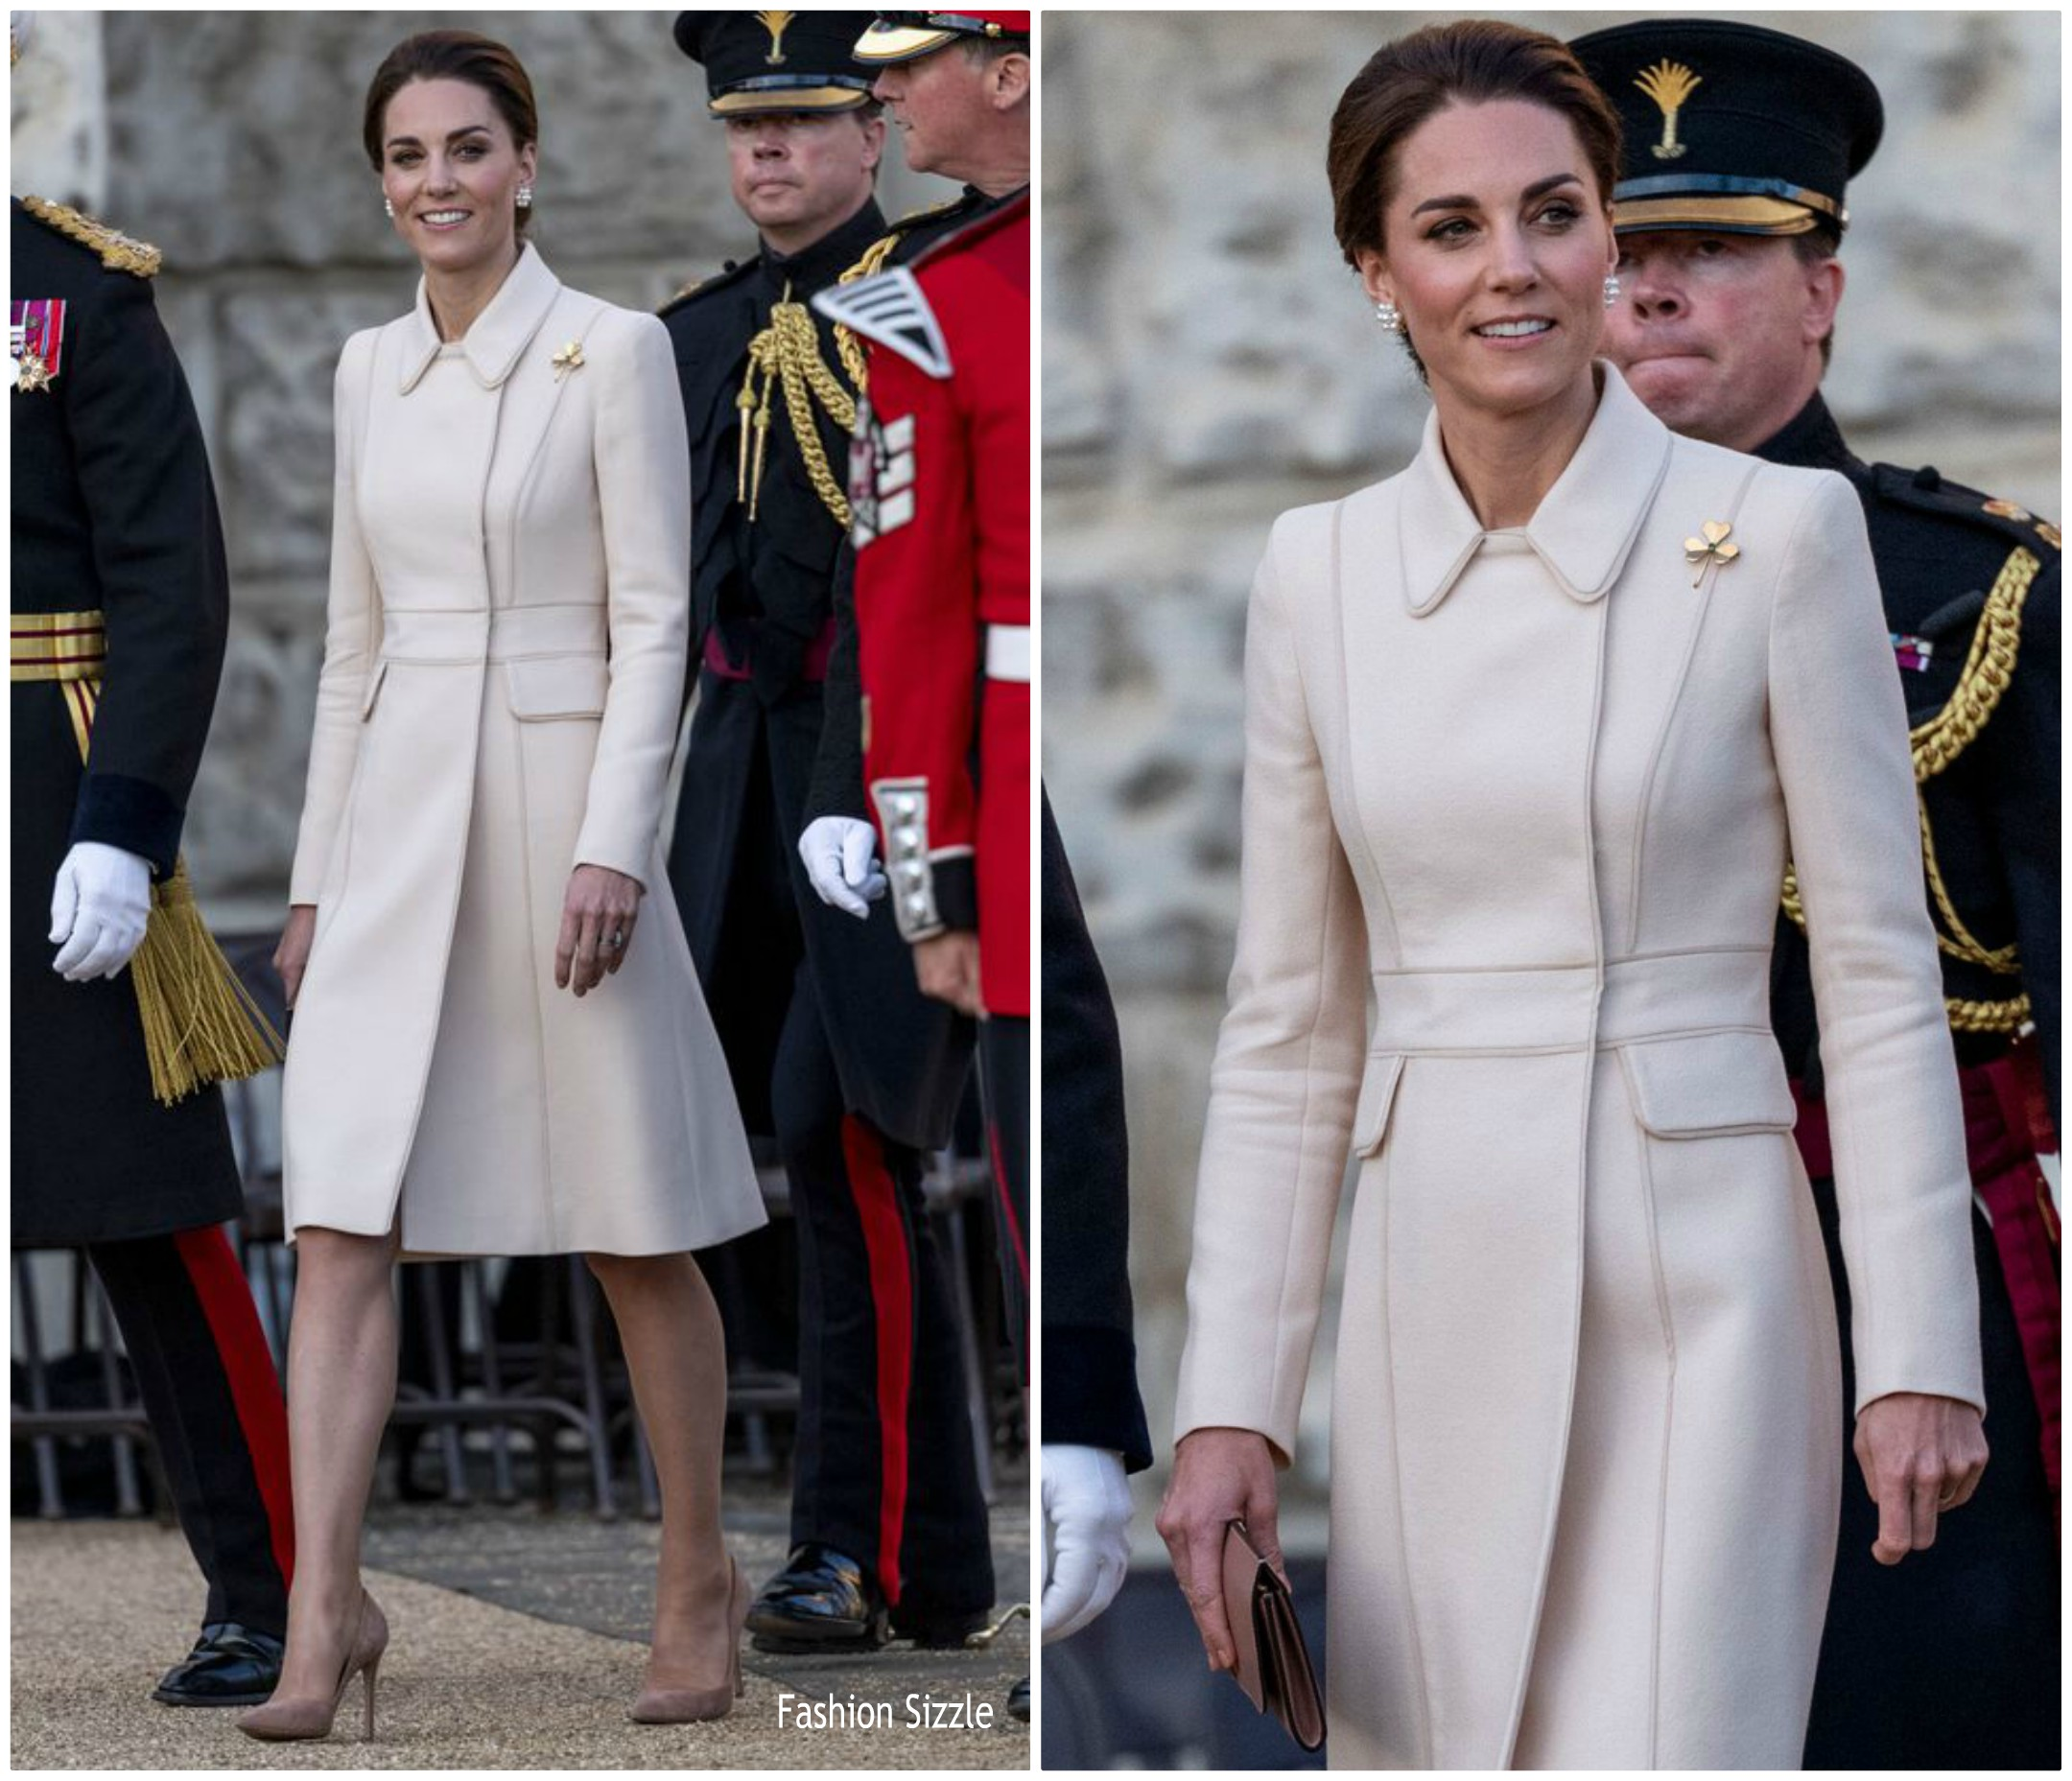 catherine-duchess-of-cambridge-in-catherine-walker-coat-beating-retreat